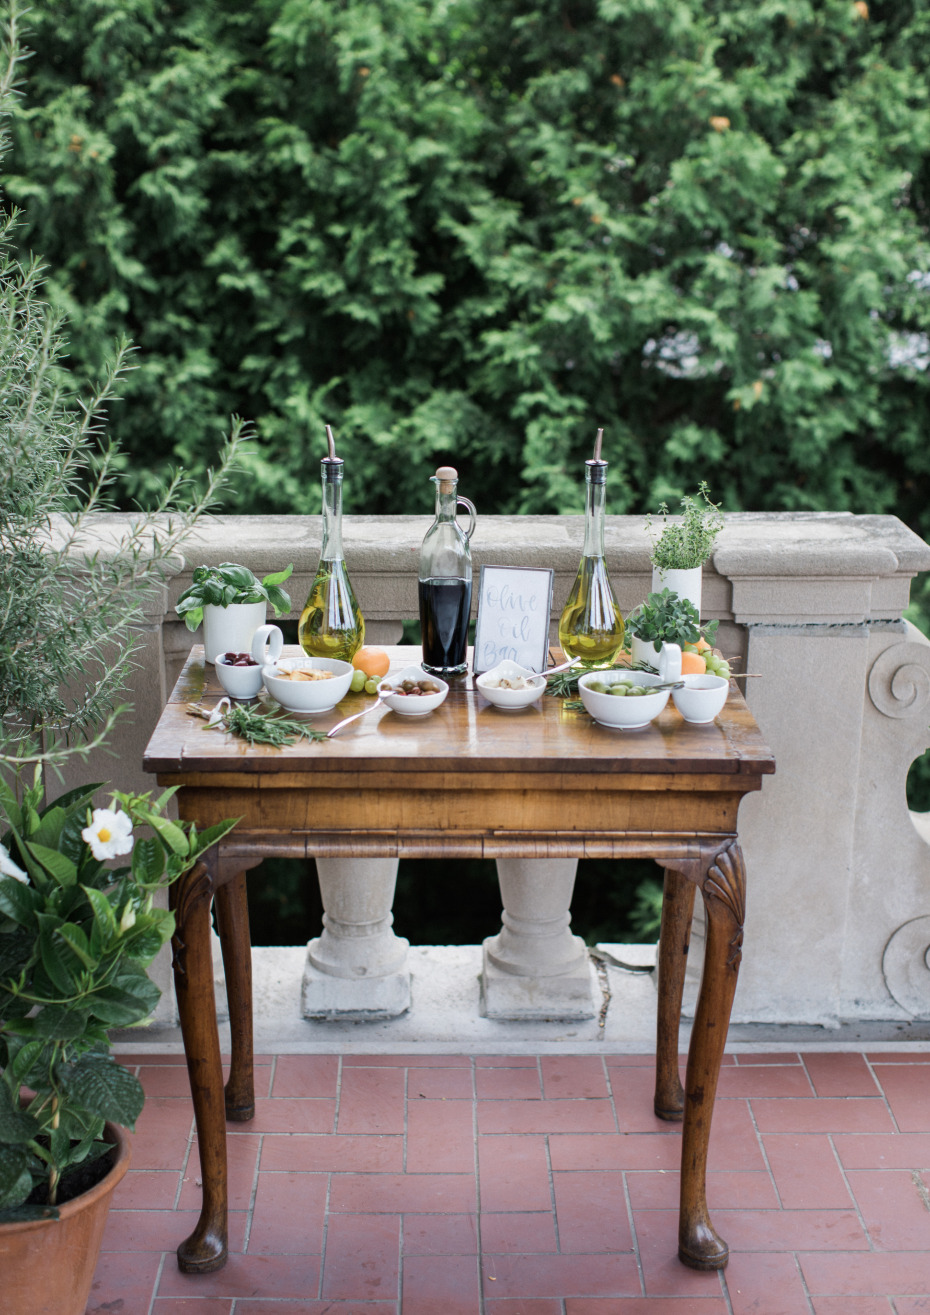 olive oil bar for guests at the wedding